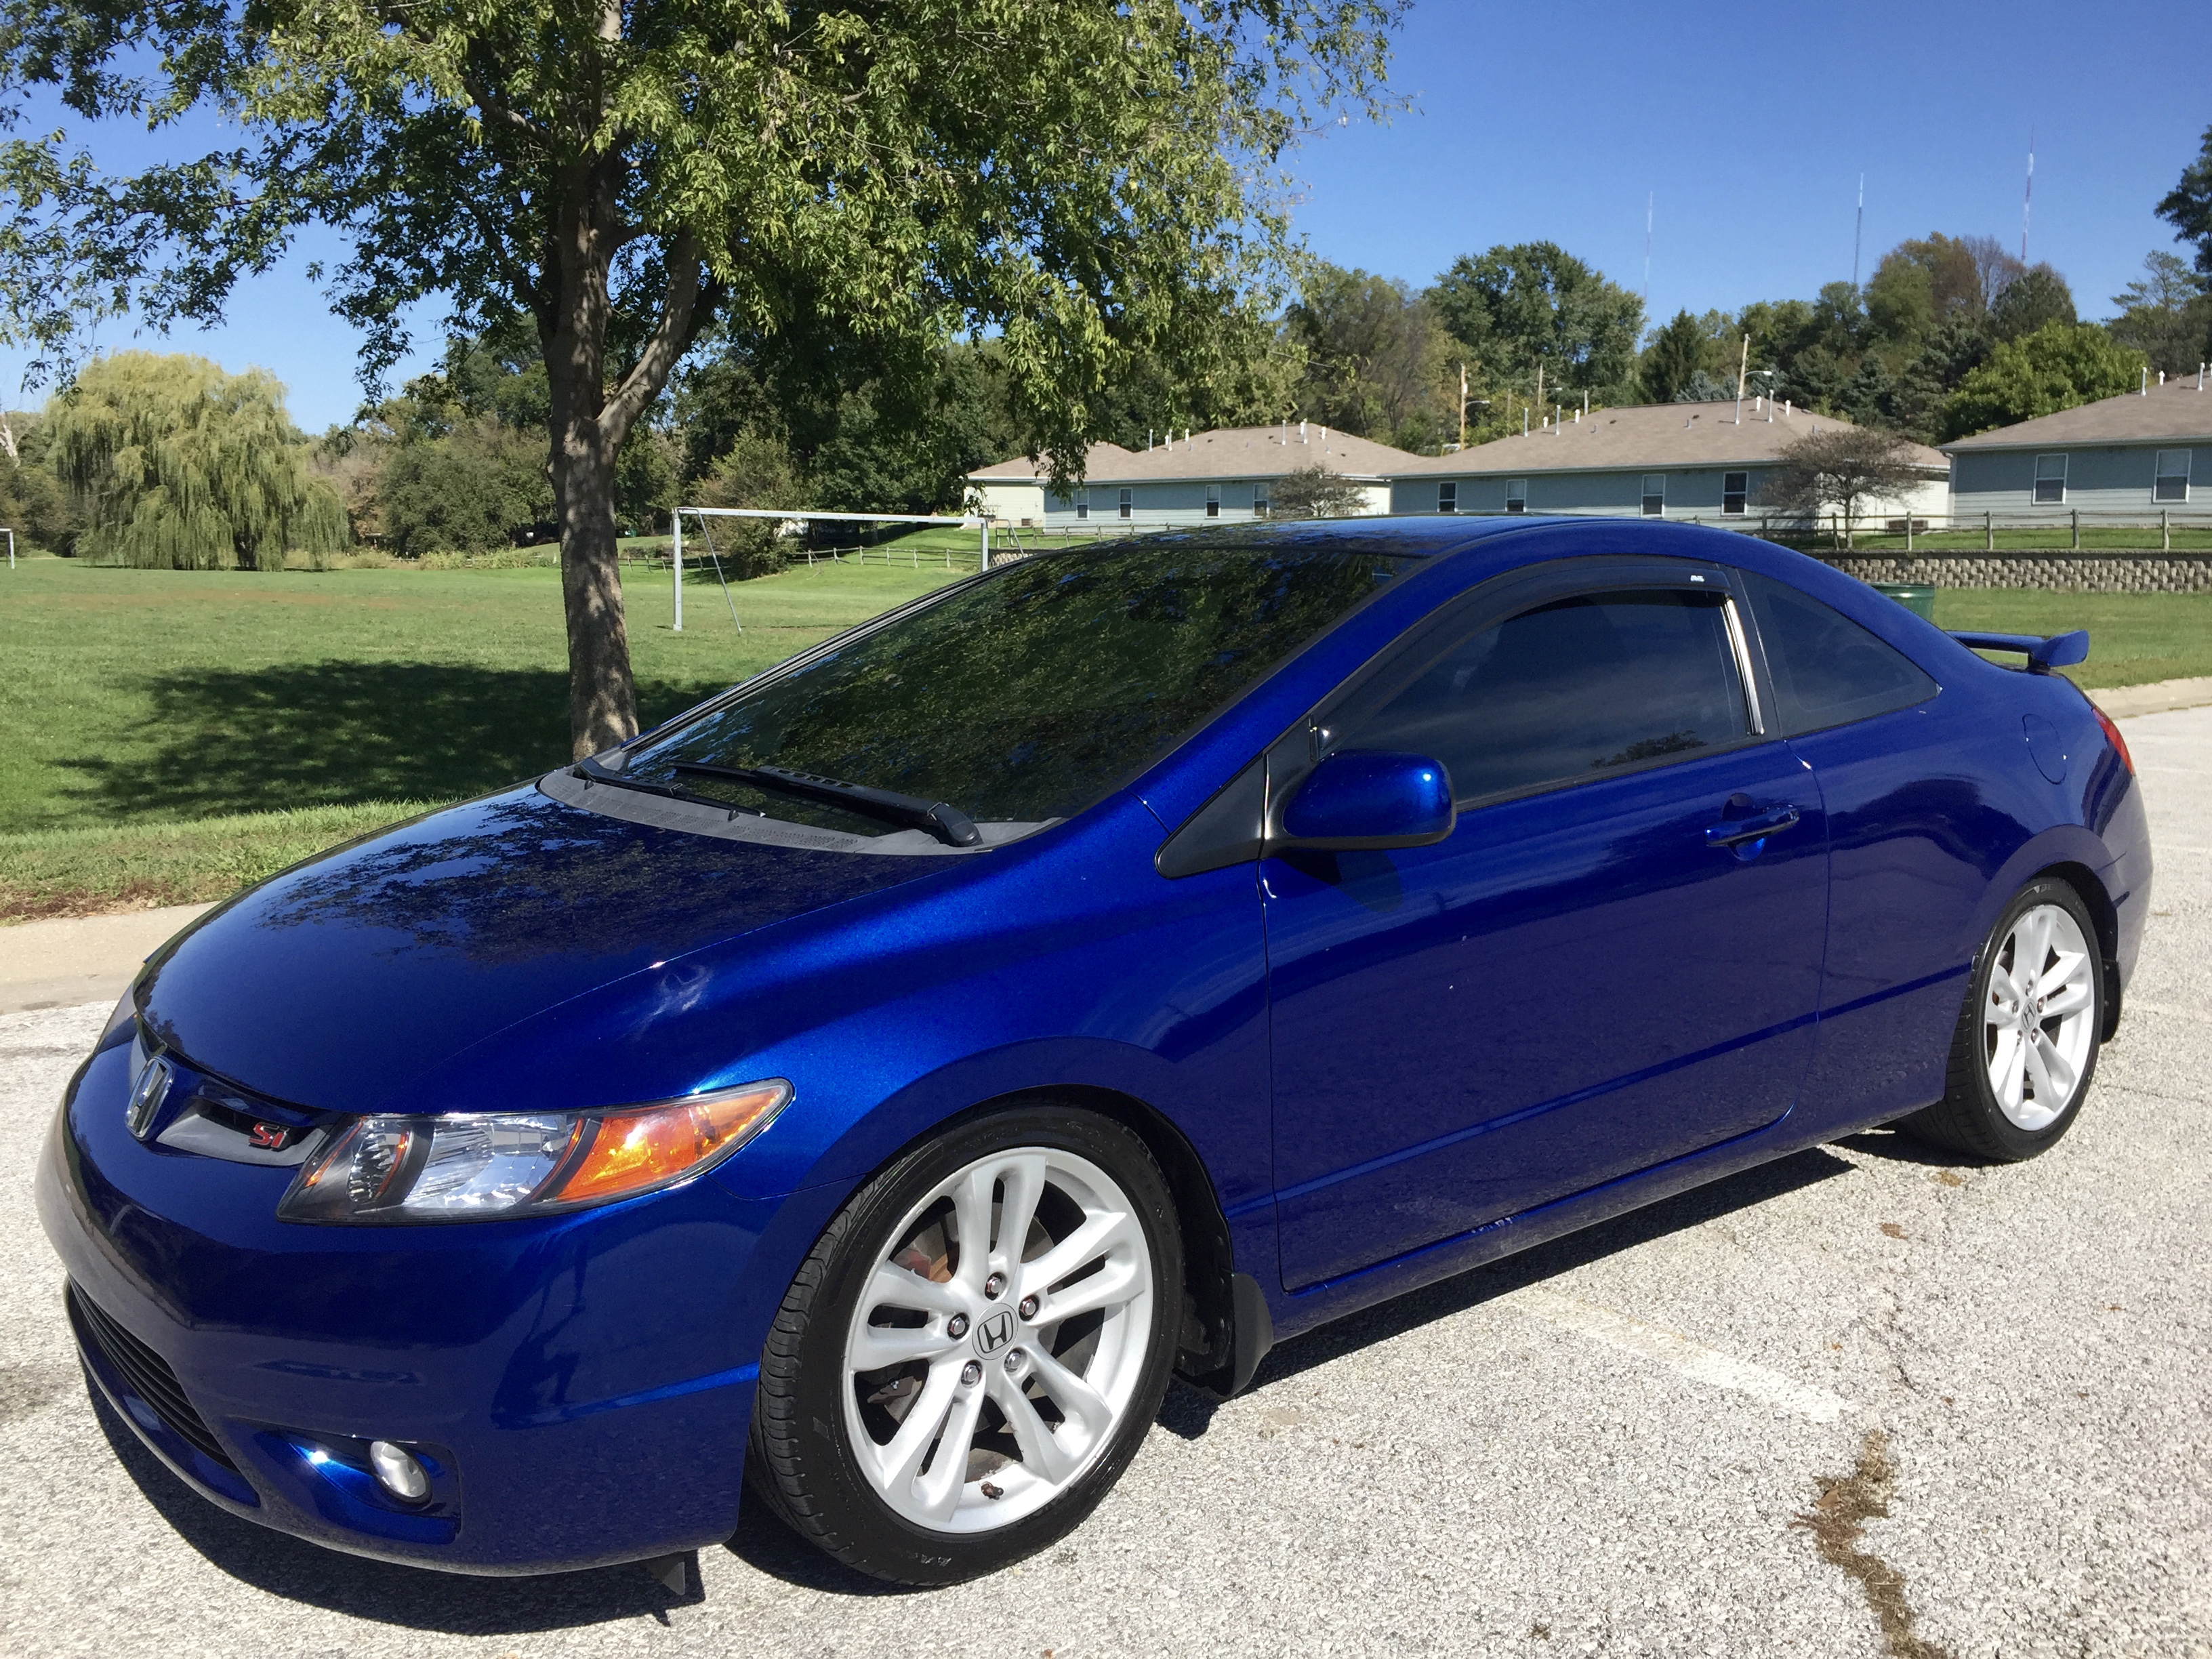 2006 Honda Civic Si Coupe (SOLD)